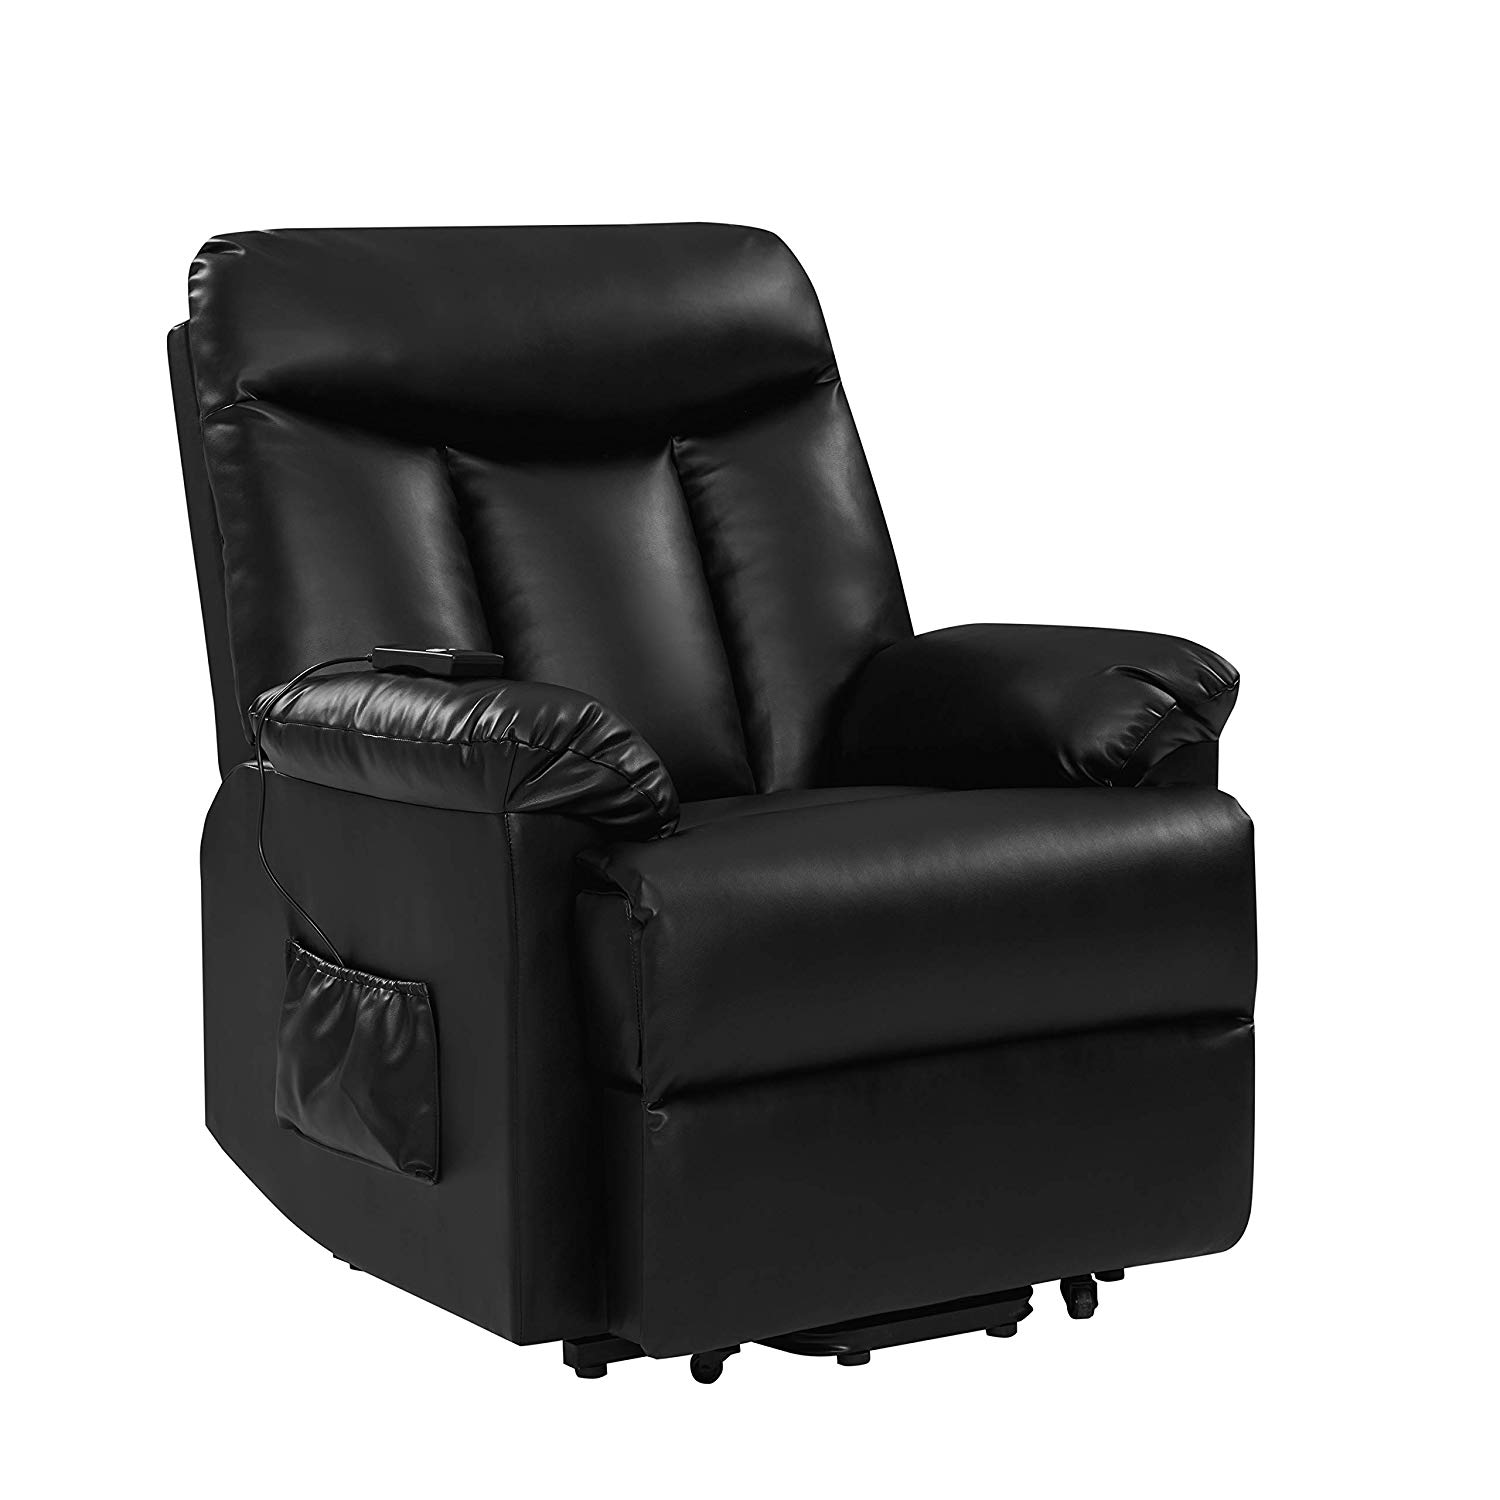 Domesis renu power lift recliner